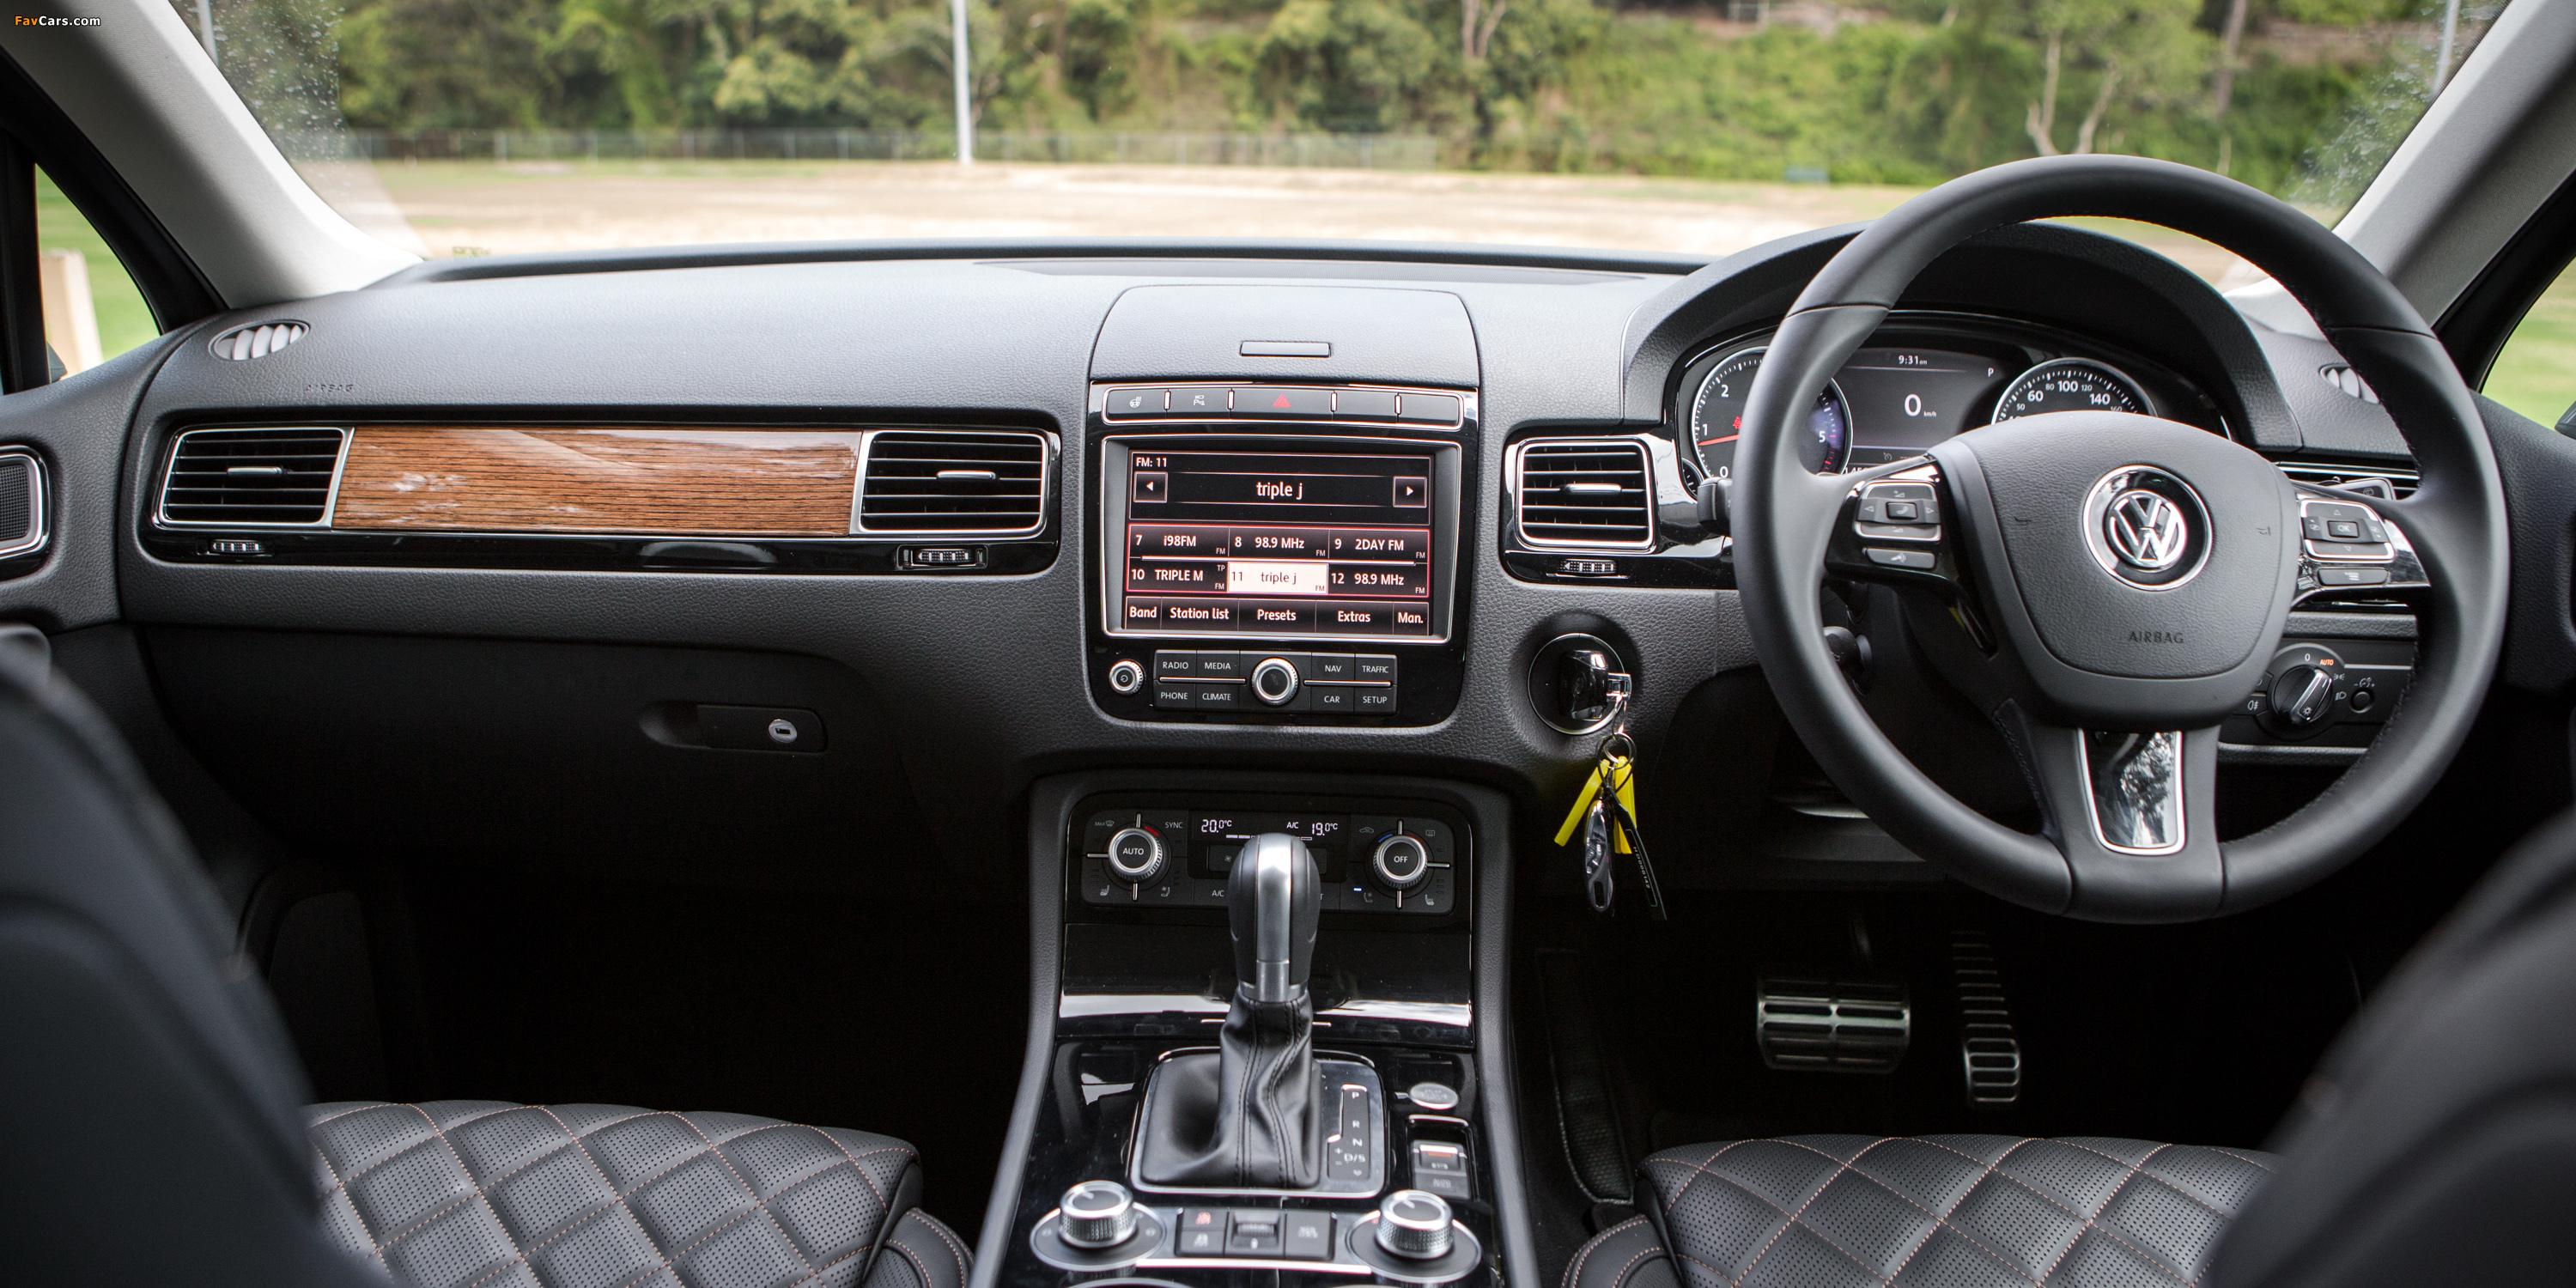 impressive awd speed grip transmission touareg and feature vwtouperformance wheel models article mountain automatic drive delivers in eight review standard stone volkswagen an all